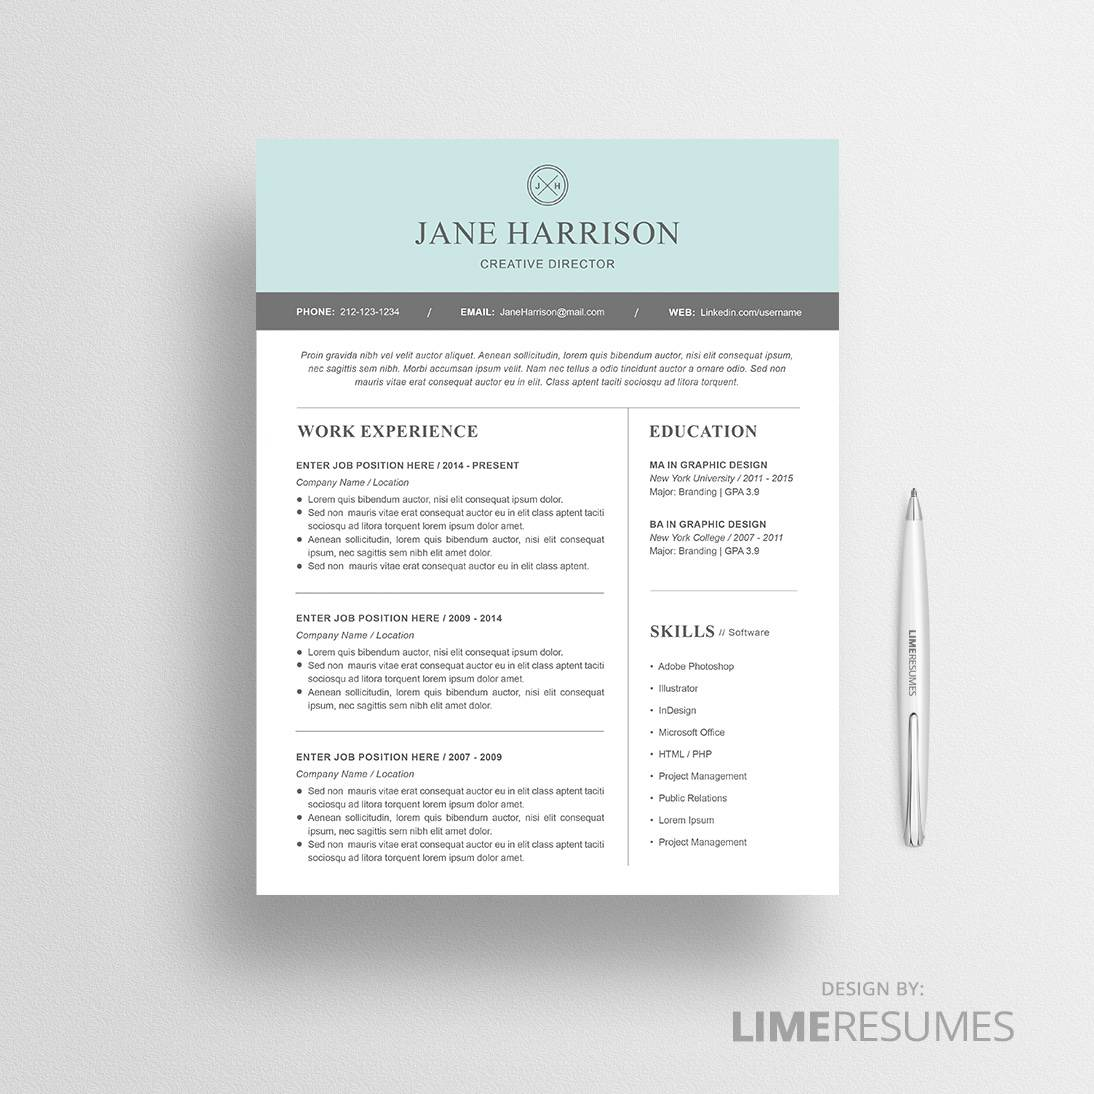 resume templates word free download - modern resume template for microsoft word limeresumes